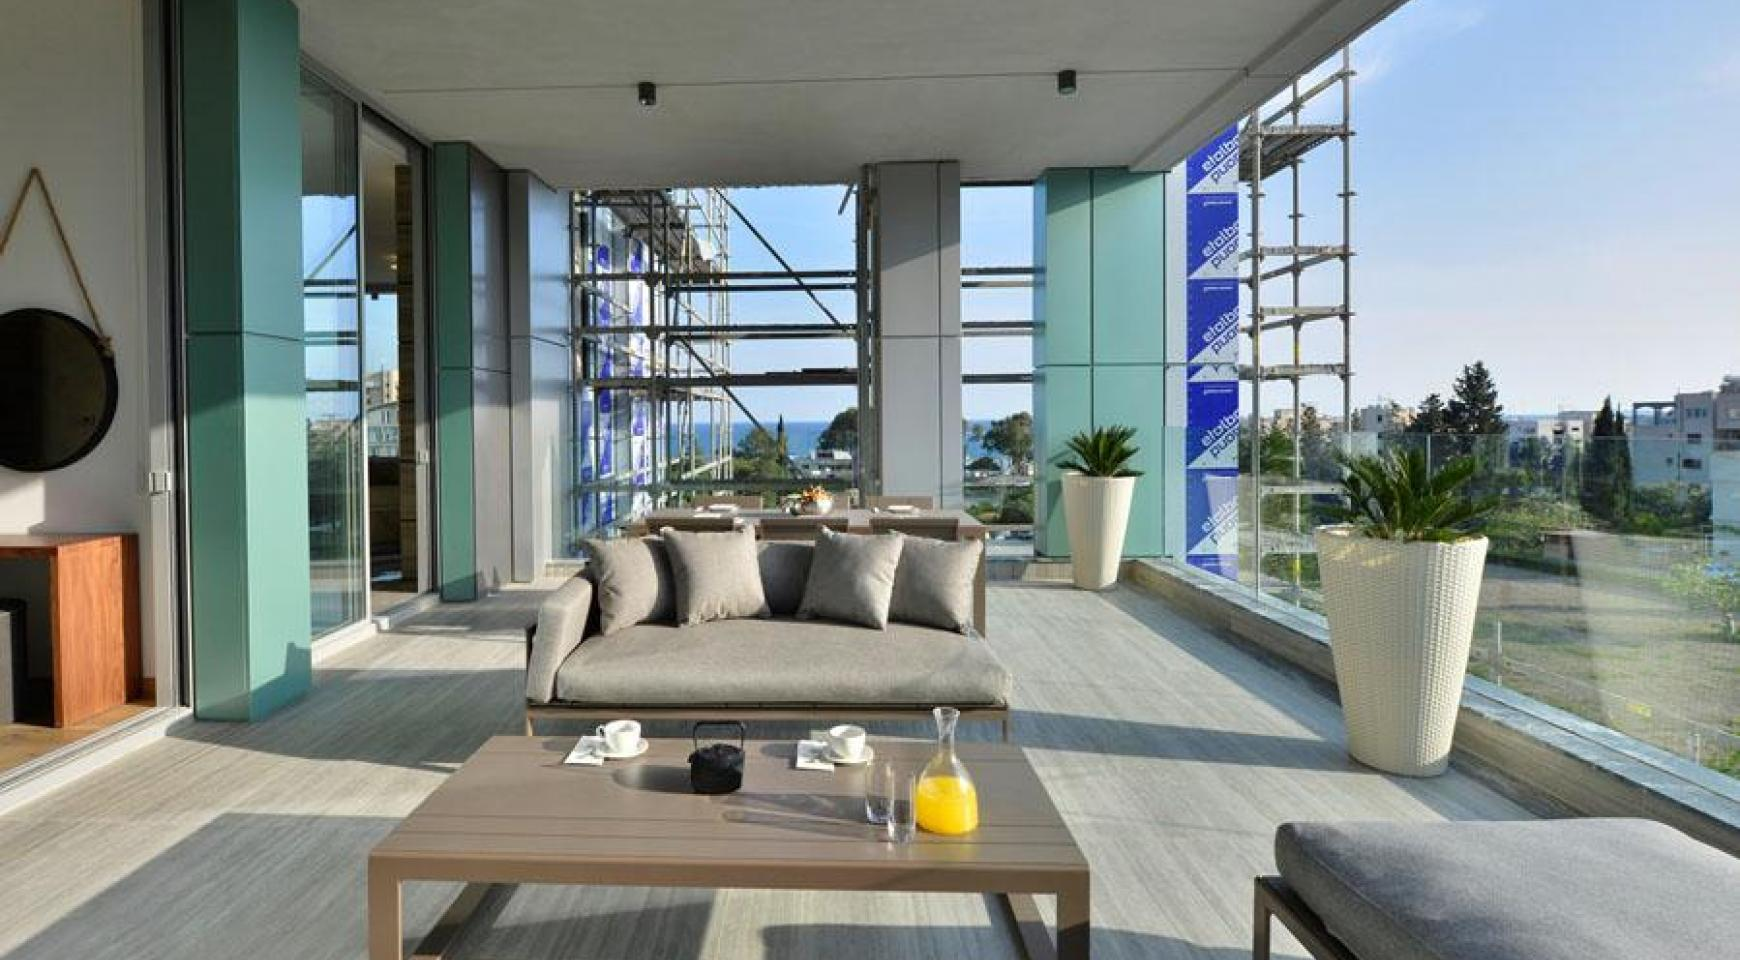 Luxurious 3 Bedroom Penthouse with Private Roof Garden near the Sea - 11